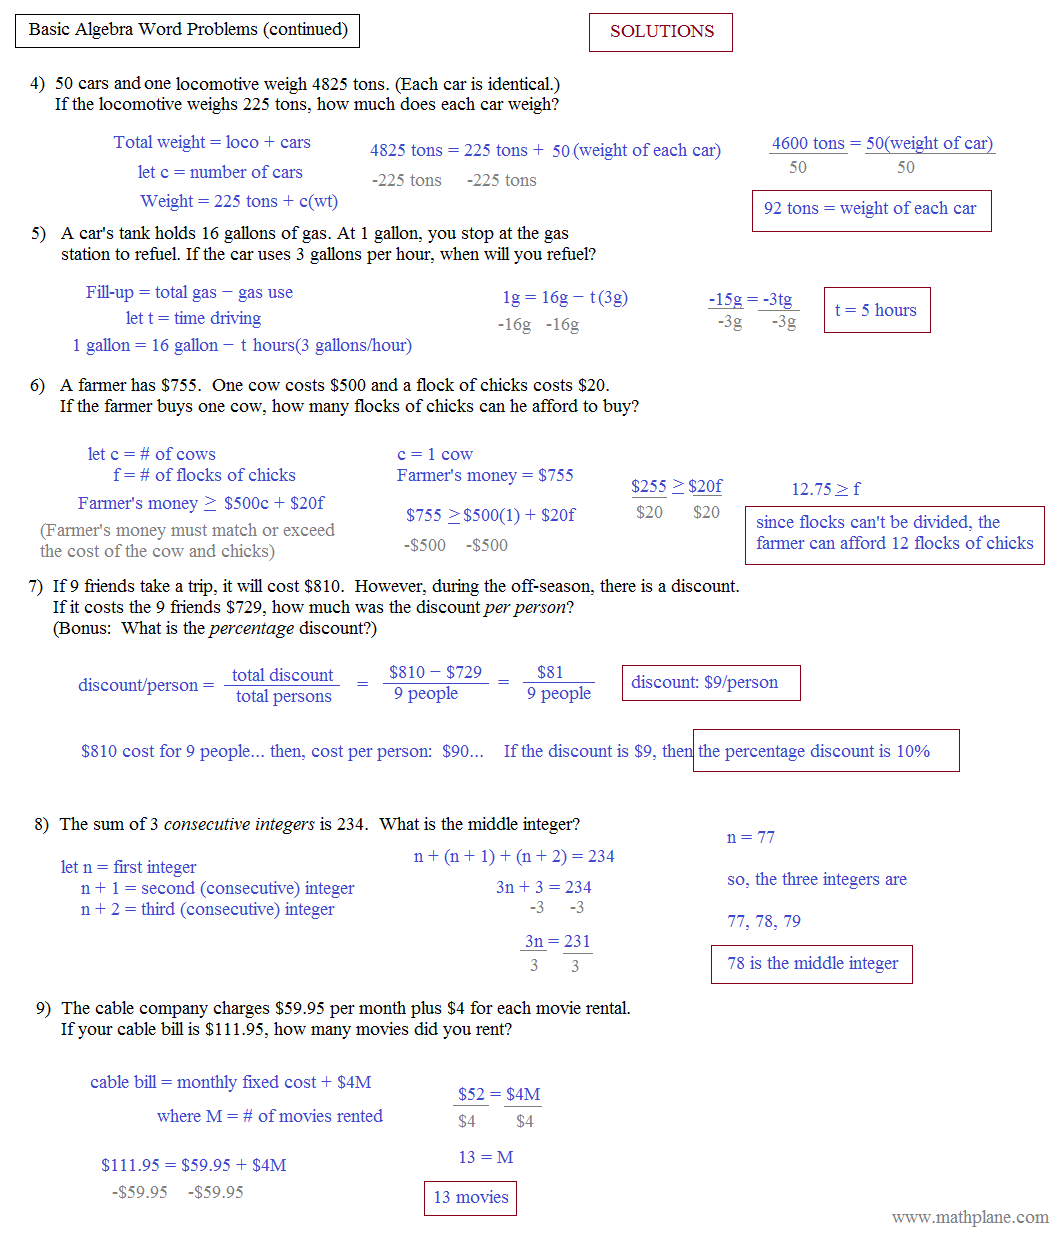 Free Worksheet Linear Word Problems Worksheet math plane algebra word problems basic 2 solutions